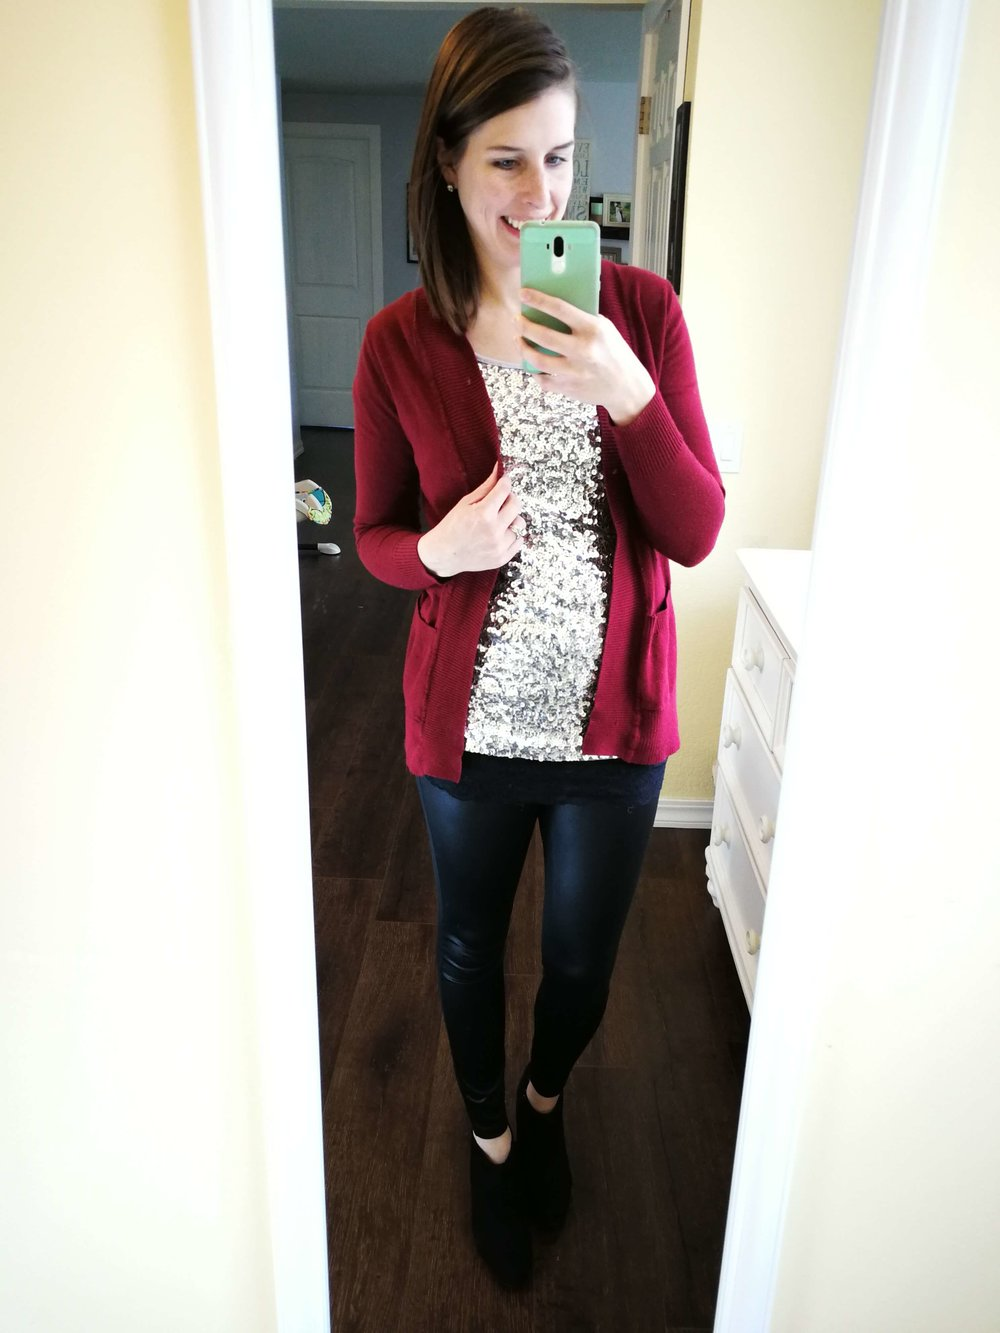 What to wear with leather leggings for a night out! Chic and classy outfit idea for winter or fall  with sequin top + cardigan + black booties.